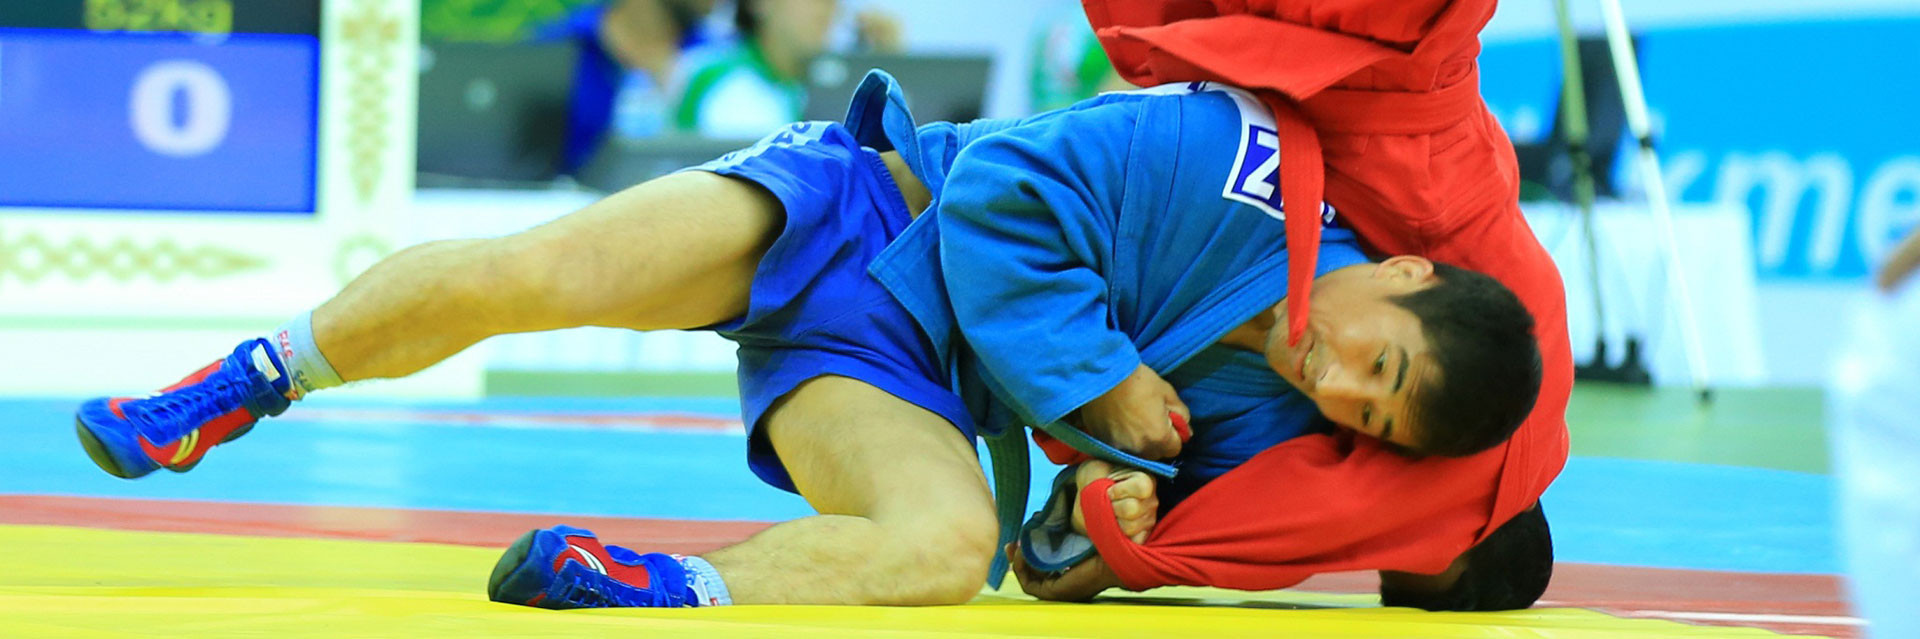 Sambo is featuring on the programme of the ongoing 2017 Asian Indoor and Martial Arts Games in Ashgabat ©Ashgabat 2017